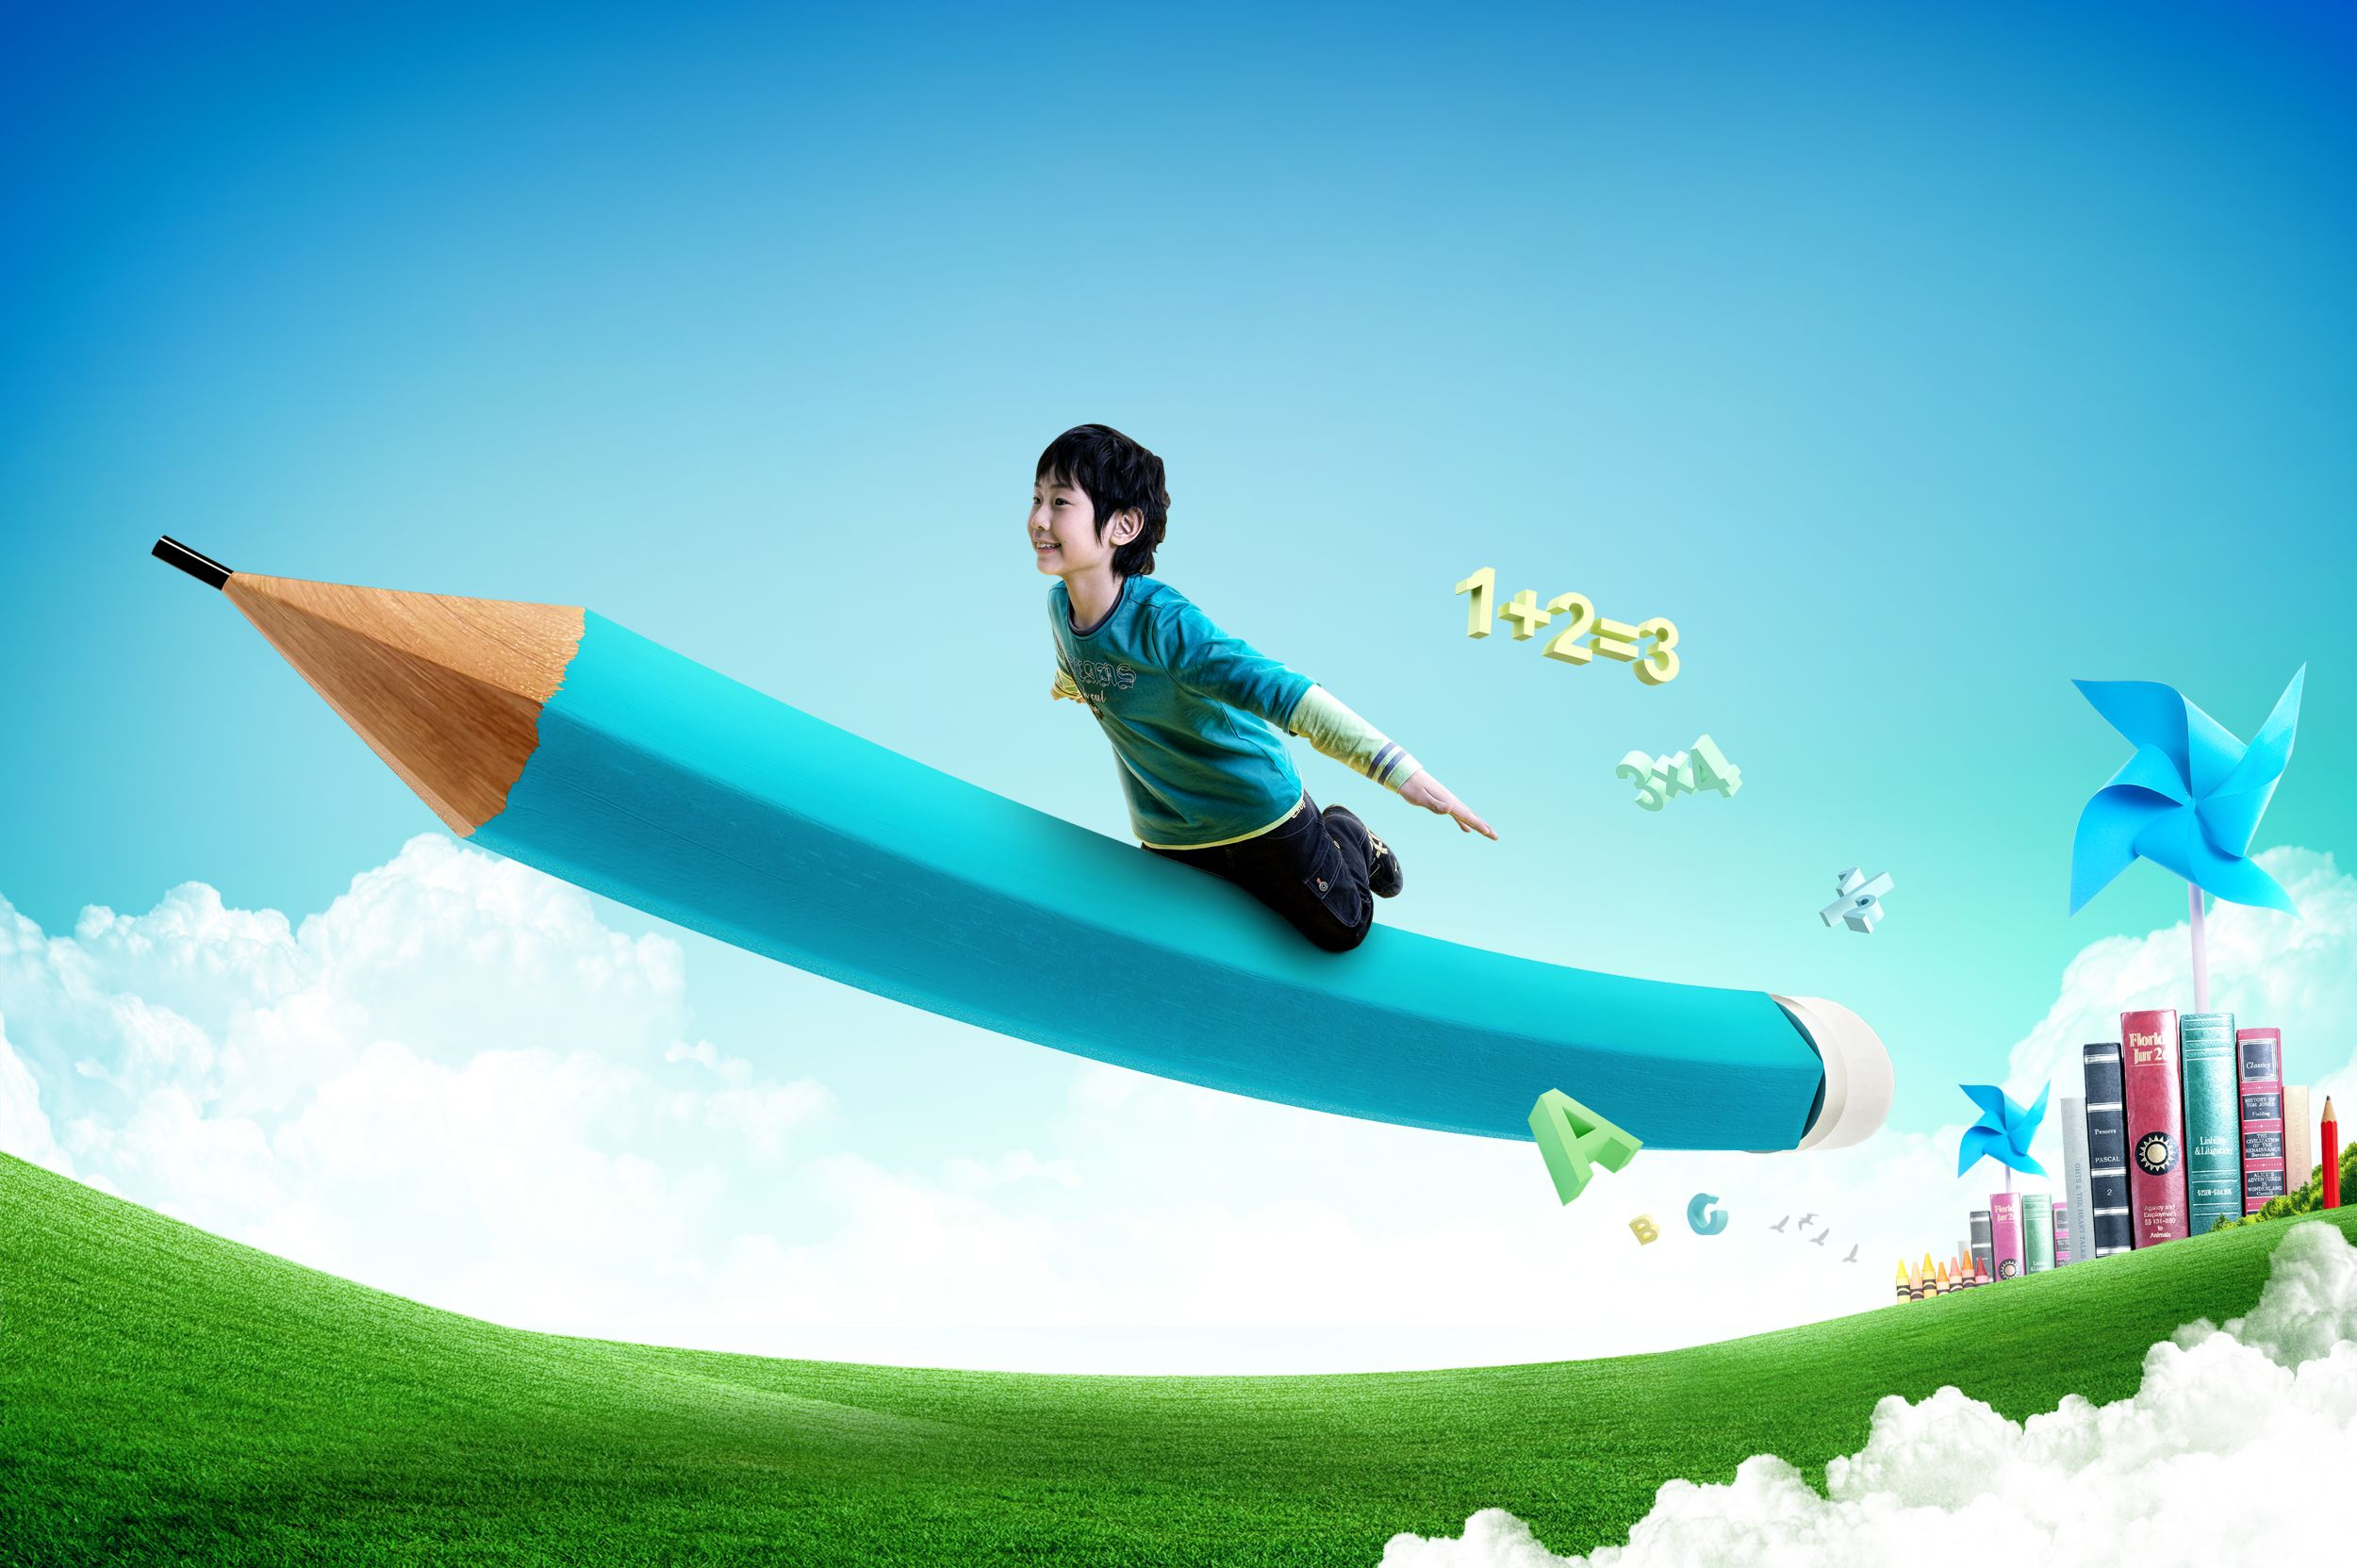 Boy rides a flying pencil online training business